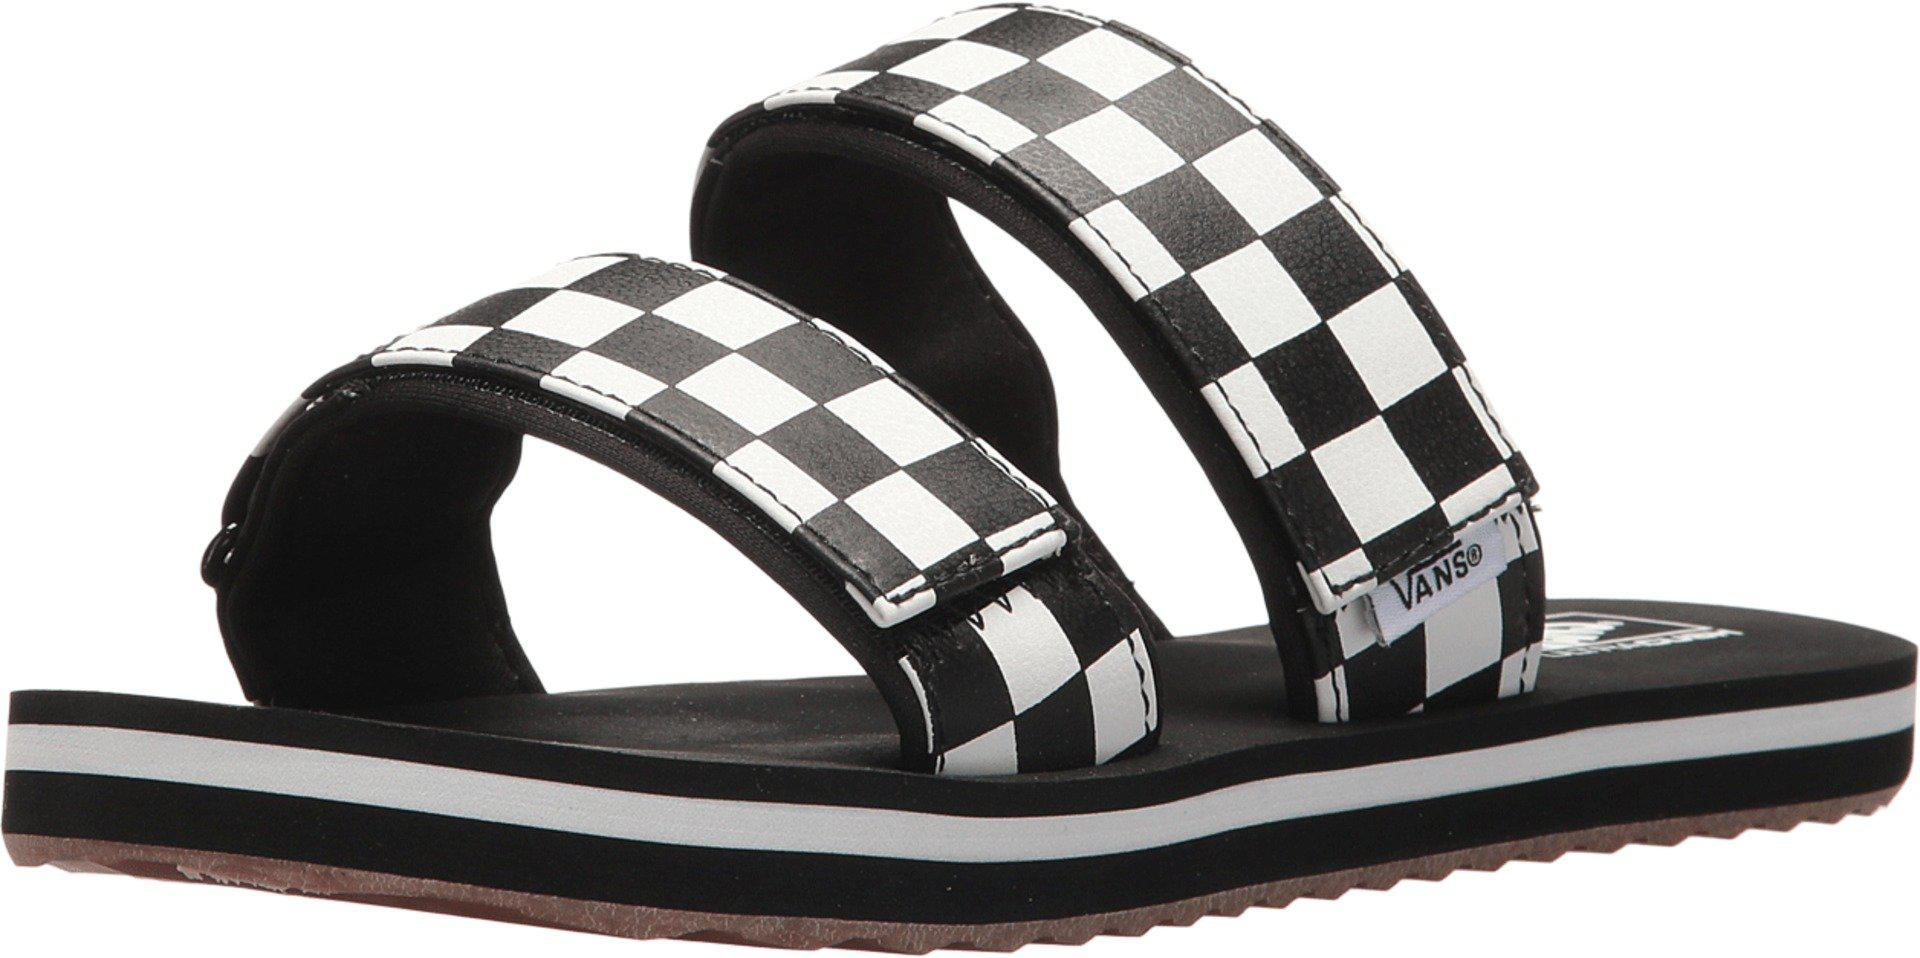 5cef4bb47869 Lyst - Vans Cayucas Slide in Black